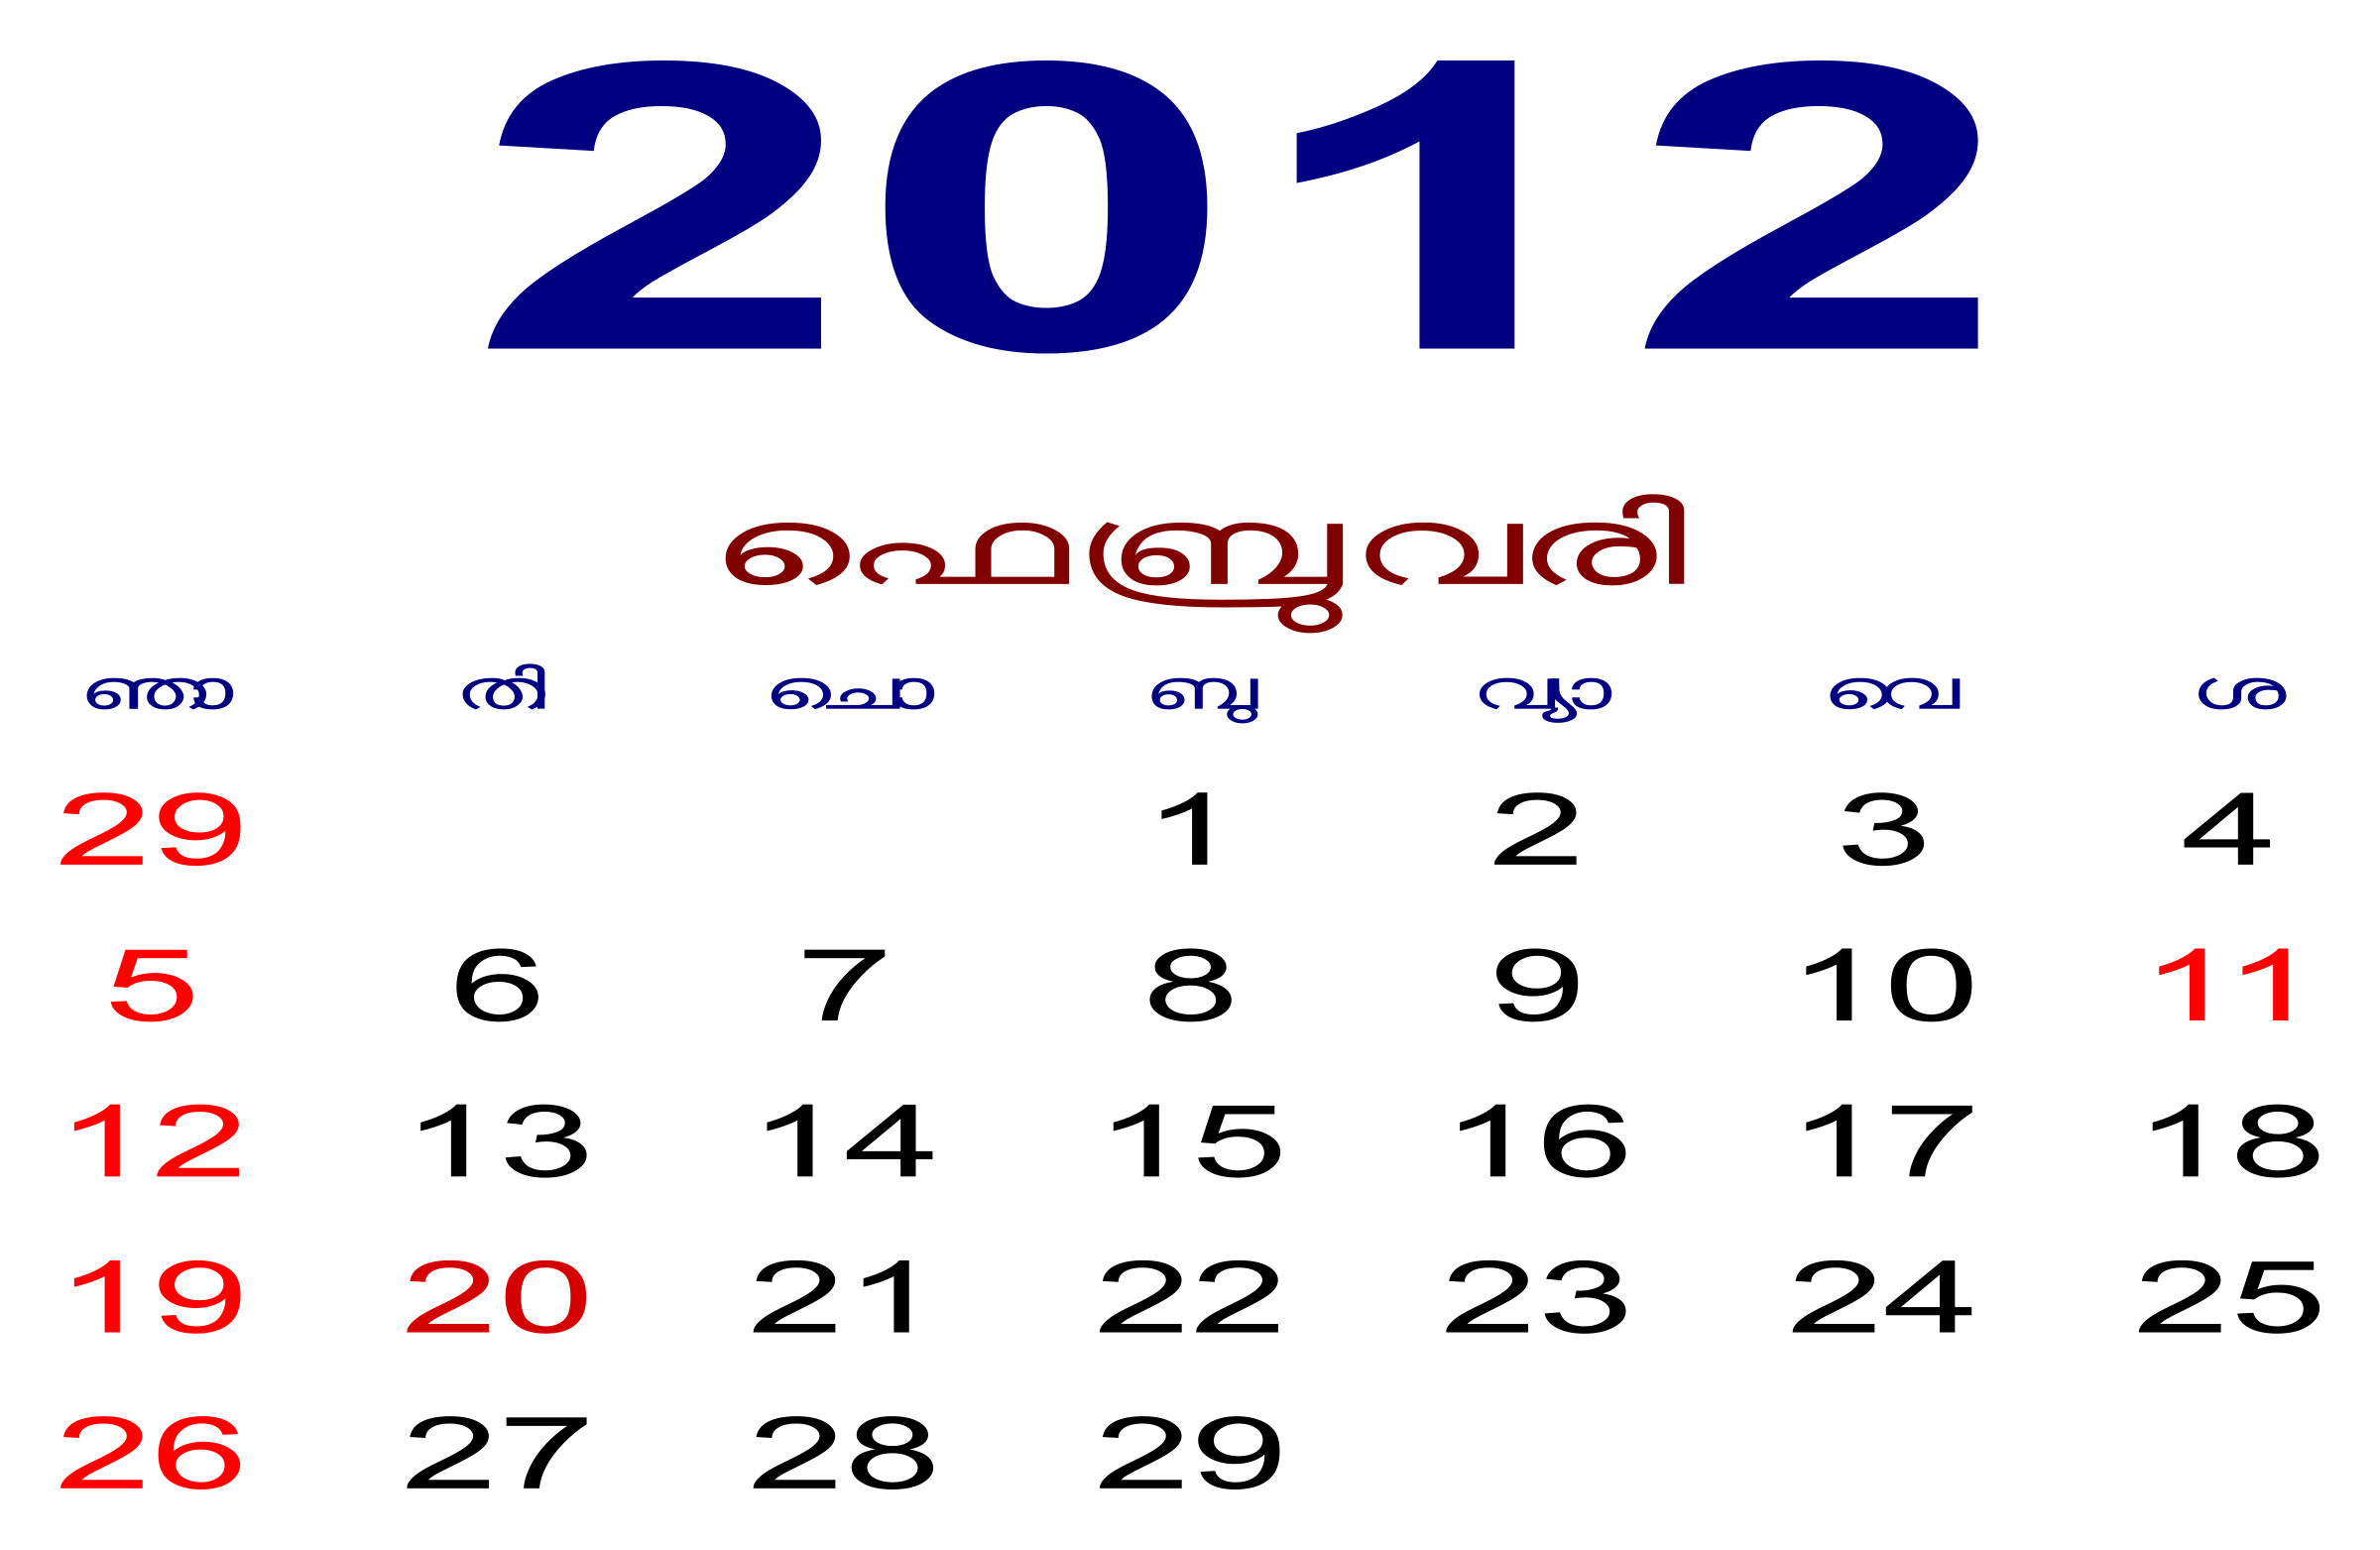 February month calendar clipart banner free stock Clipart - February Month Malayalam Calender 2012 Open Source banner free stock